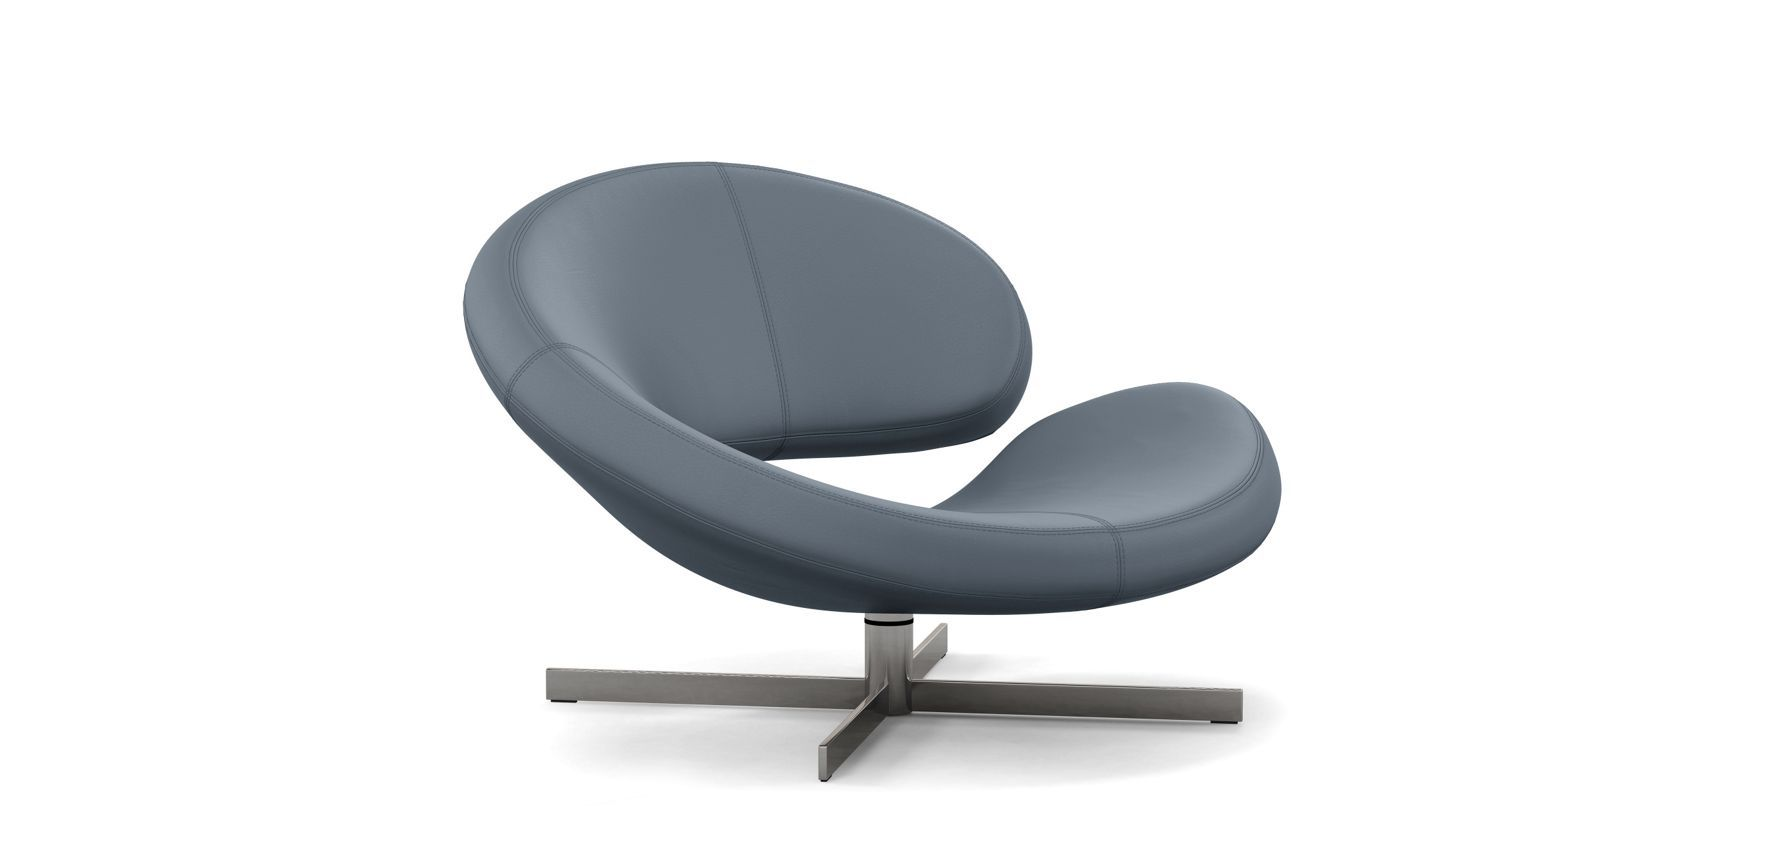 discover our product nuage swivel armchair as well as other products from the family